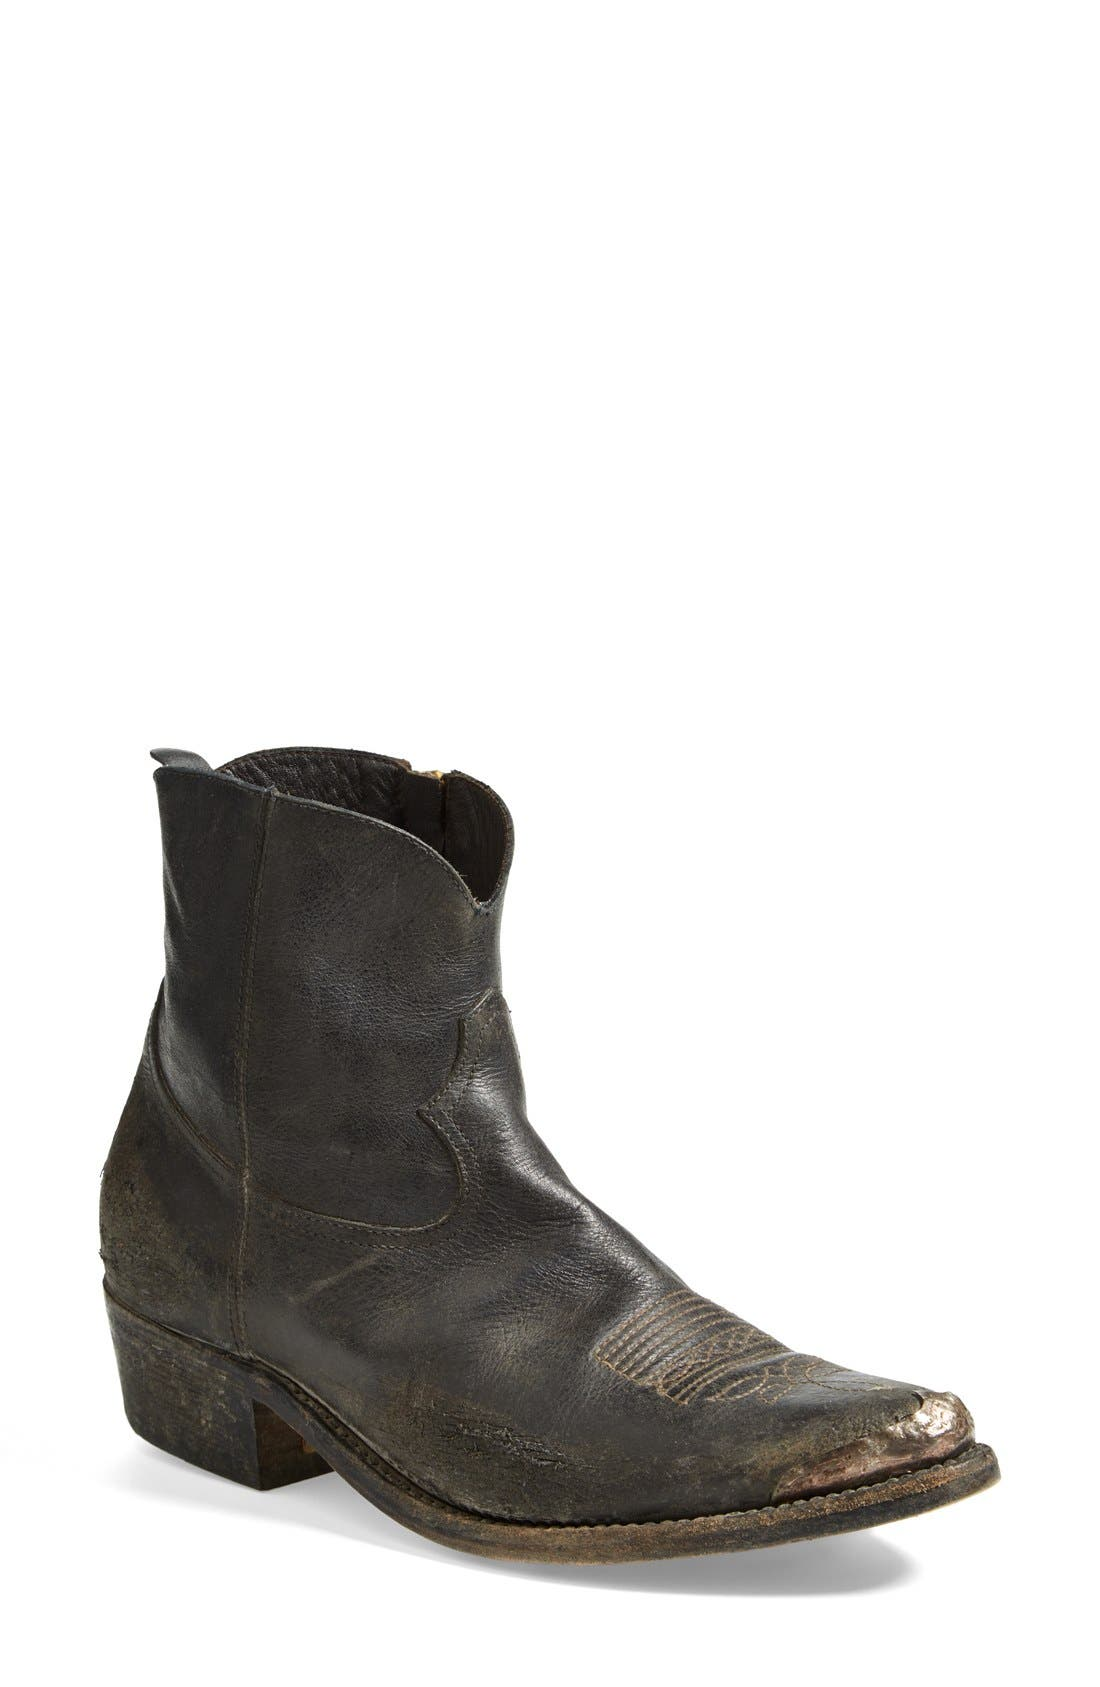 Alternate Image 1 Selected - Golden Goose 'Young' Western Boot